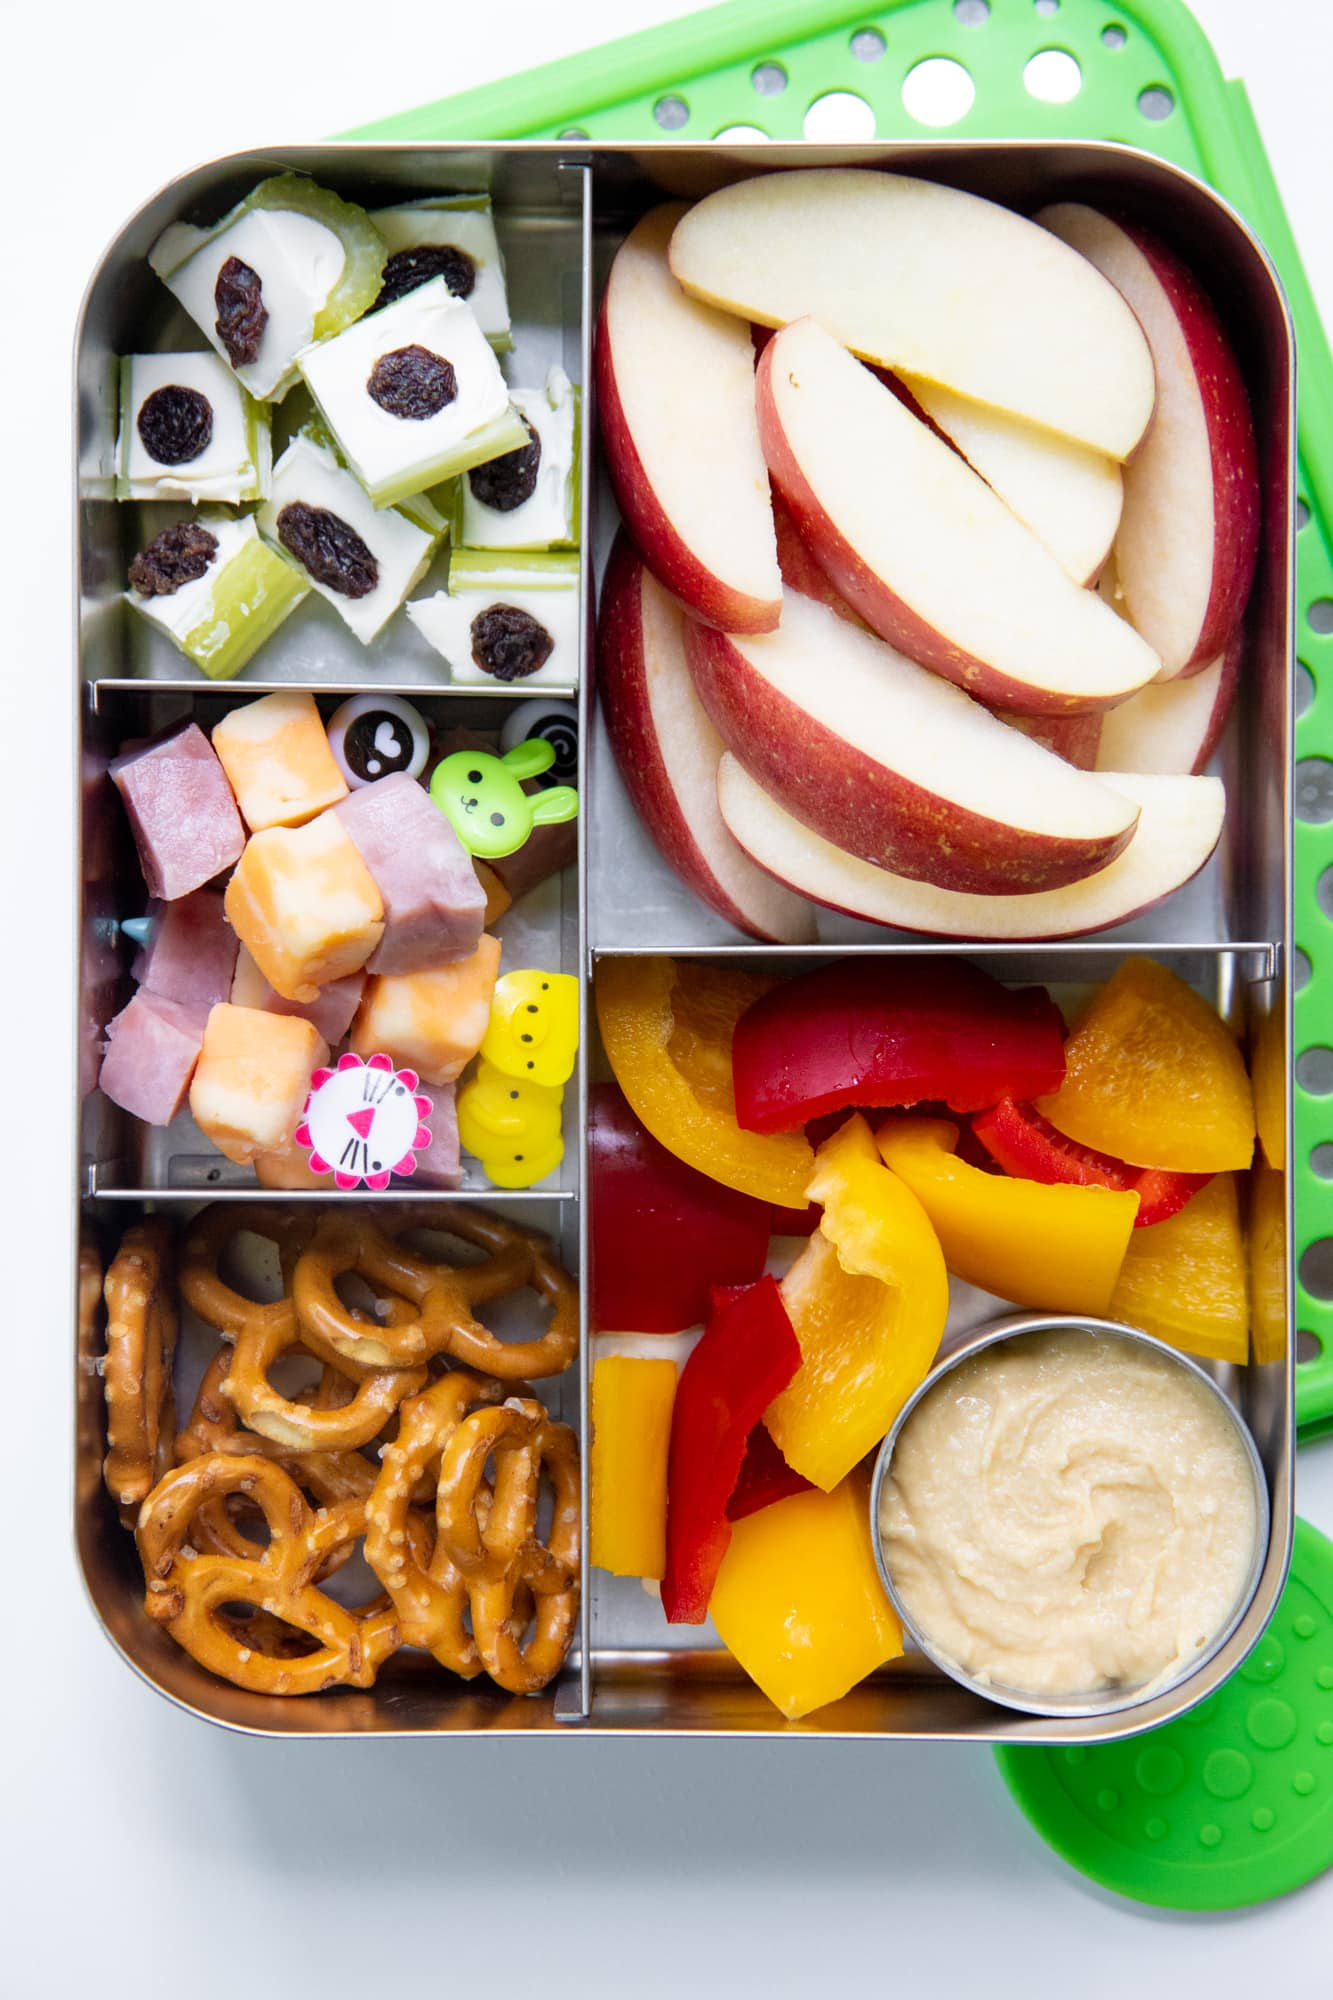 Close-up of a bento-style stainless steel lunch box filled with apple slices, pretzels, ham and cheese on toothpicks, bell peppers and hummus, and stuffed celery, for a school lunch idea.